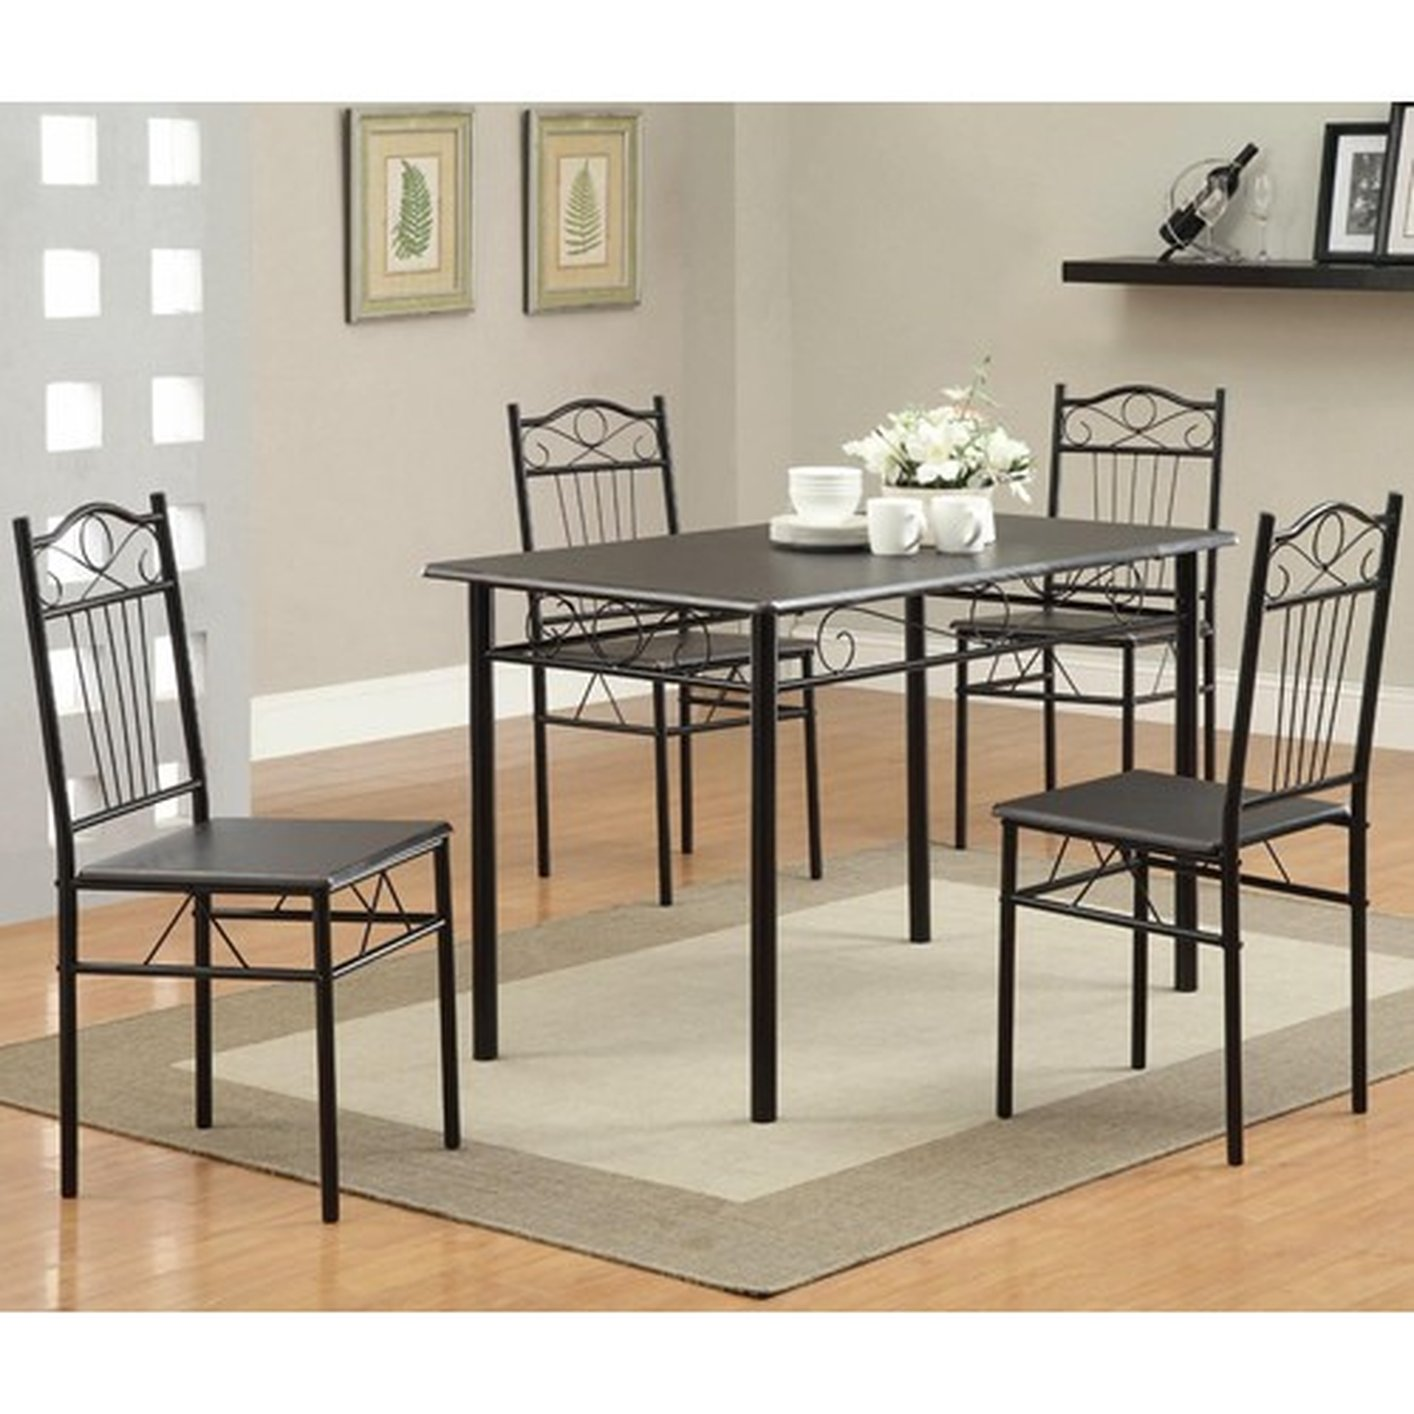 coaster metal kitchen table Black Metal Dining Table and Chair Set